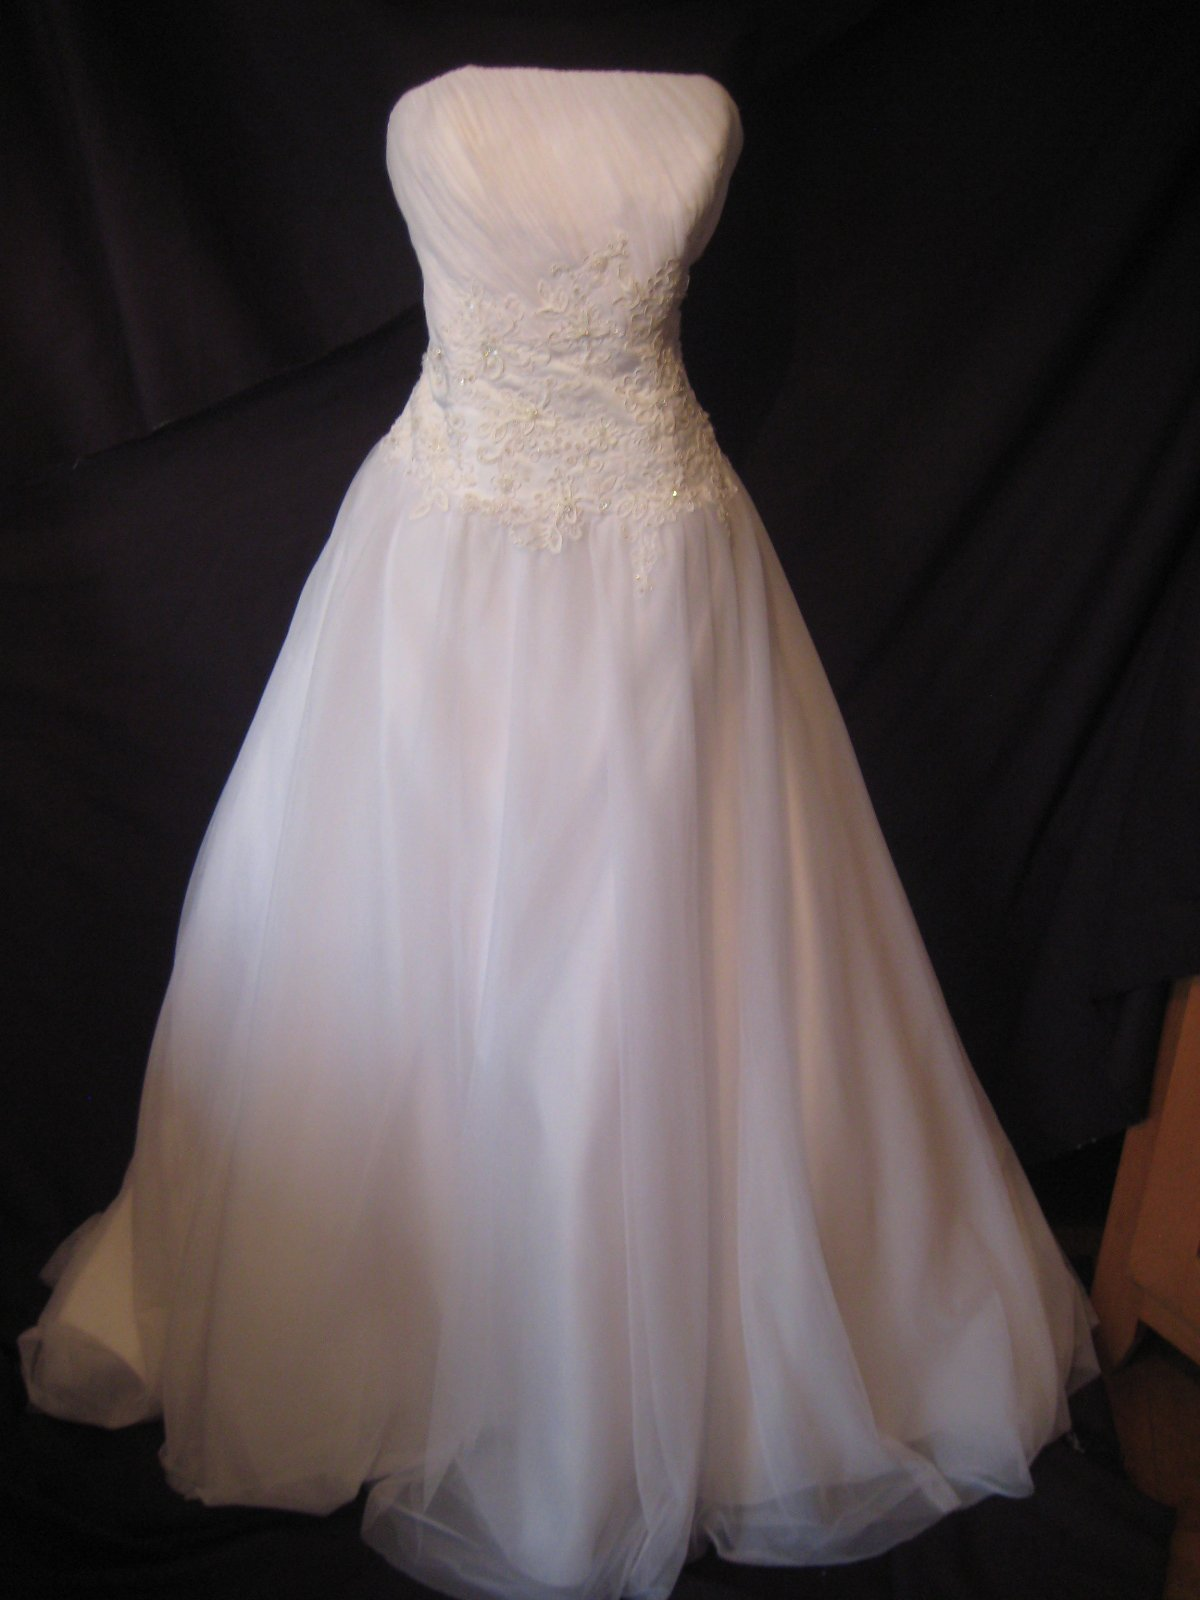 A long wedding dress with a decorated bust